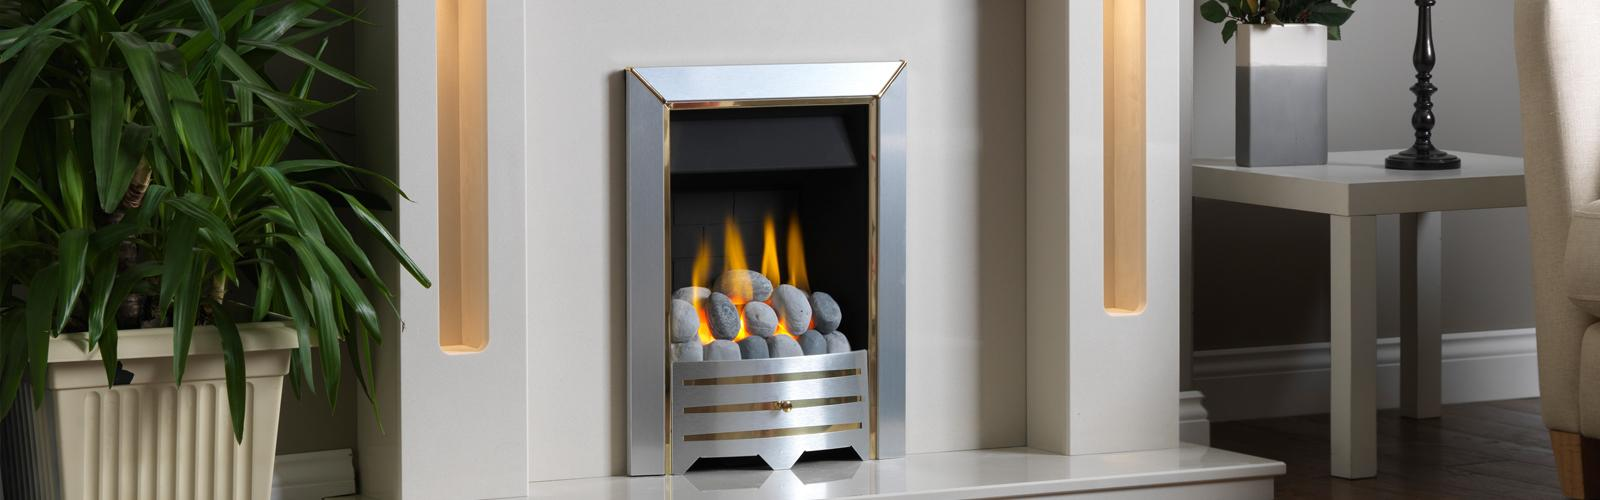 Gas fires for the home from Dimplex